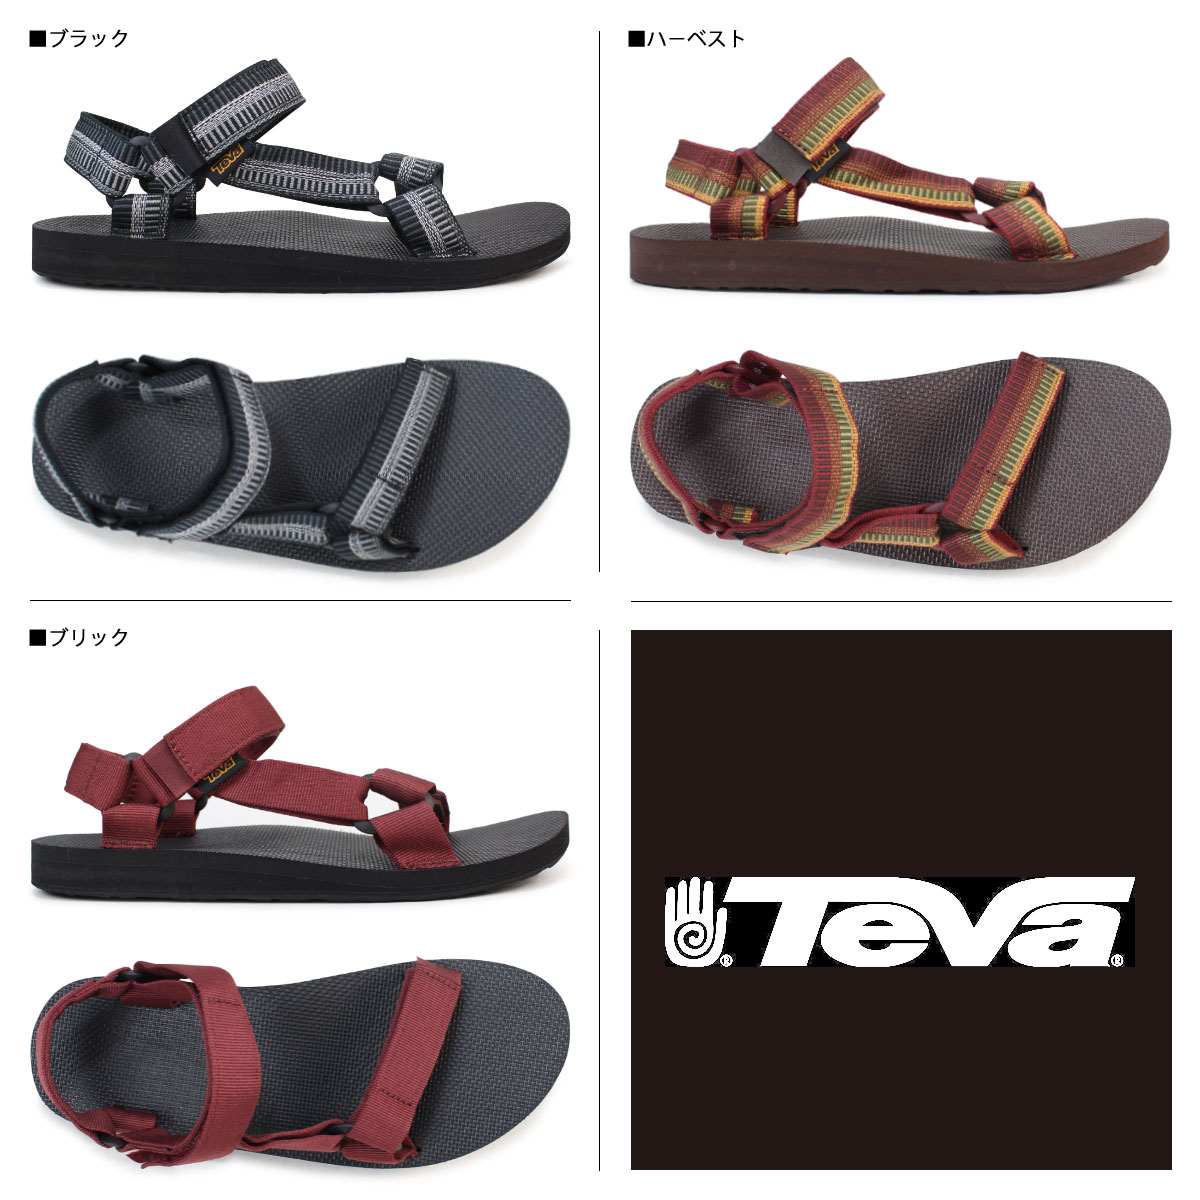 b62544b7fd5f Because I developed sports sandals with a strap for the first time in the  world